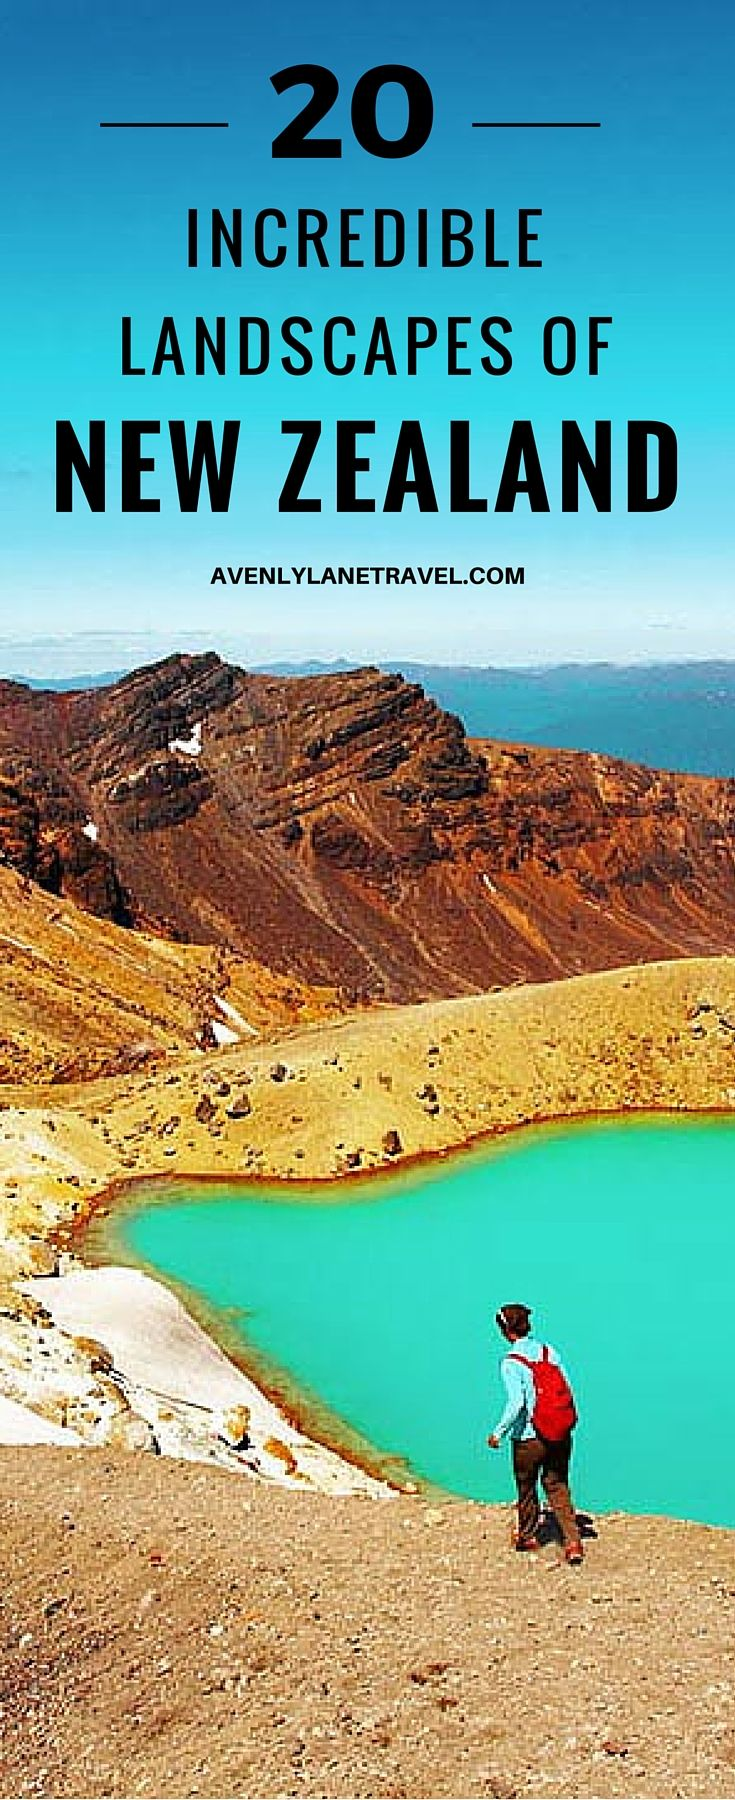 20 Incredible Landscapes You Can Only Find In New Zealand! The Tongariro Alpine Crossing is a perfect day hike in the North Island's Tongariro National Park. This park is famous for volcanic activity, its beautiful Emerald Lakes, and Maori religious sites.